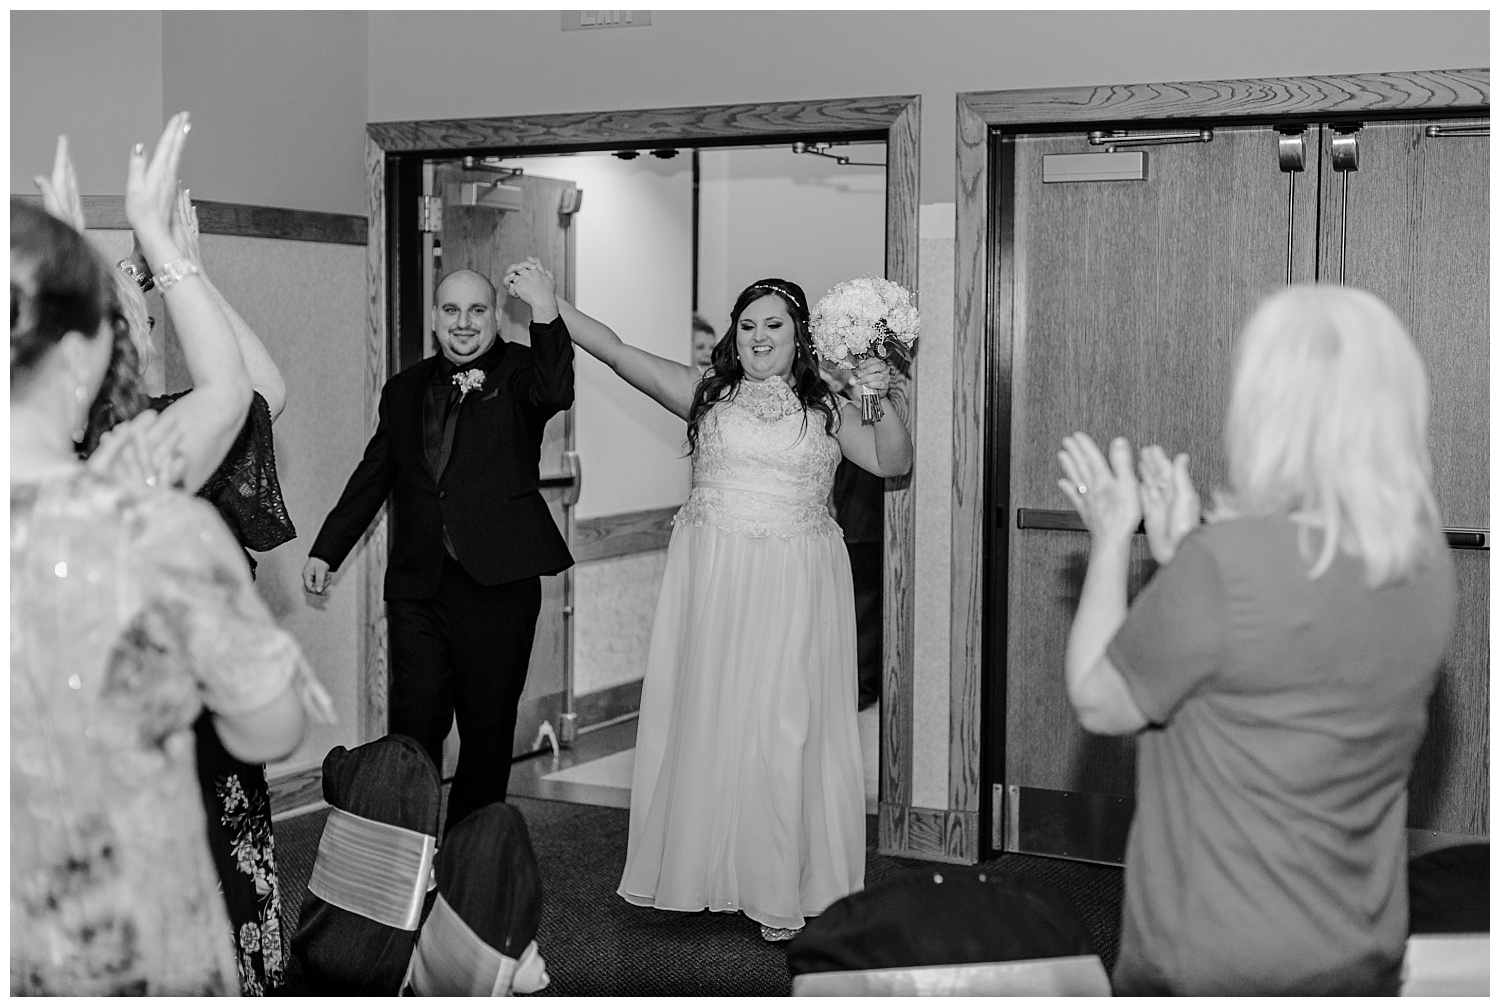 A Black and Gold Catholic Church Wedding in Wilkes Barre Pennsylvania by lehigh valley pennsylvania based wedding and lifestyle photographer Jeannie Lytle of Lytle Photography   Company (45).jpg